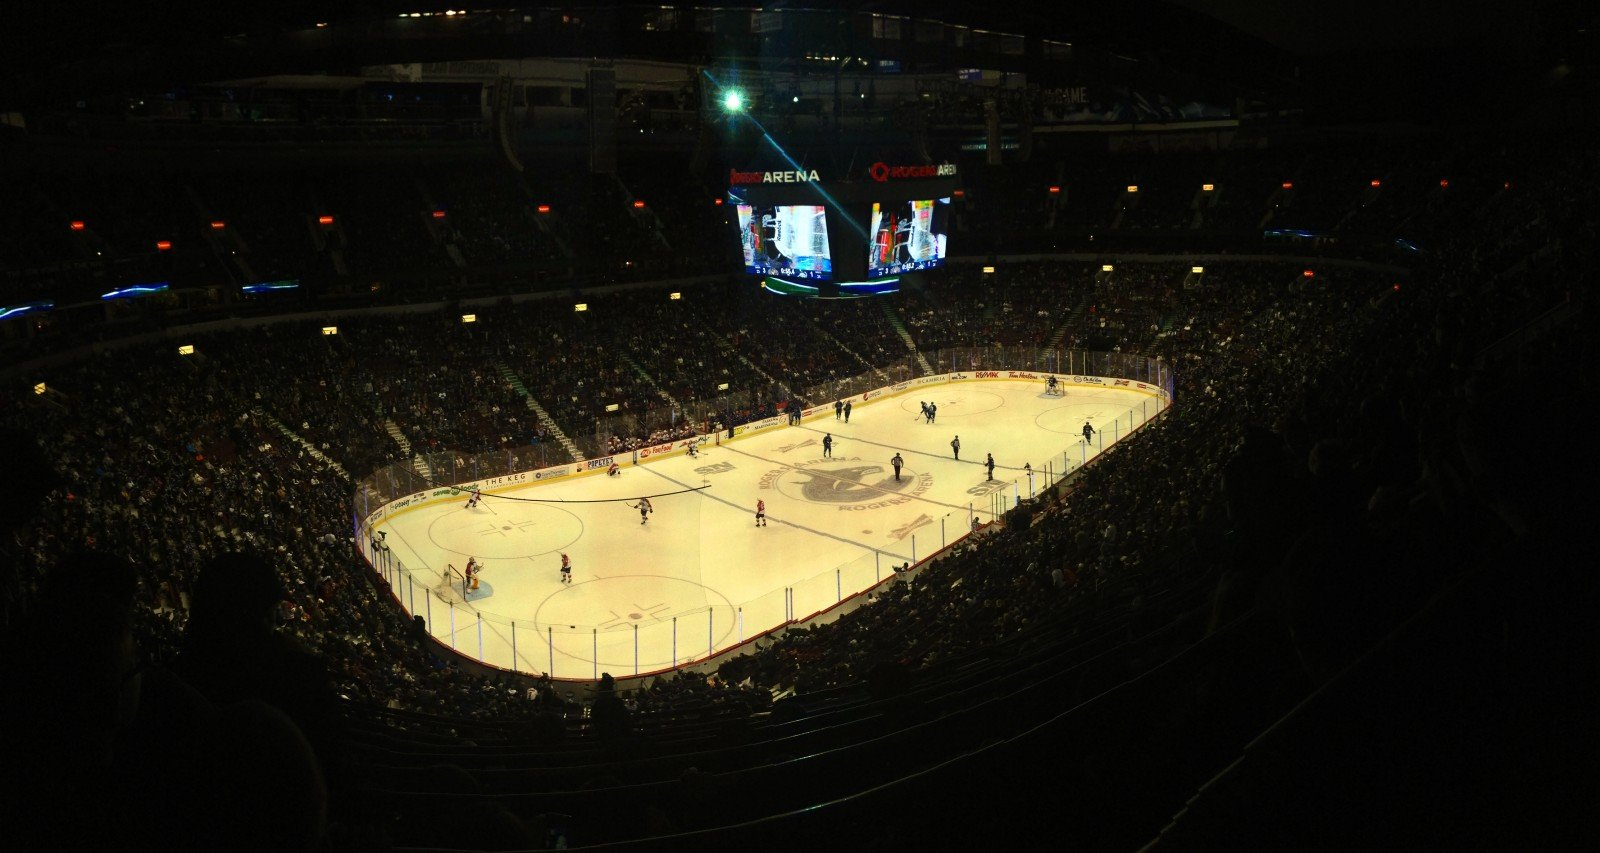 Vancouver club listing for the Vancouver Canucks at Rogers Arena.